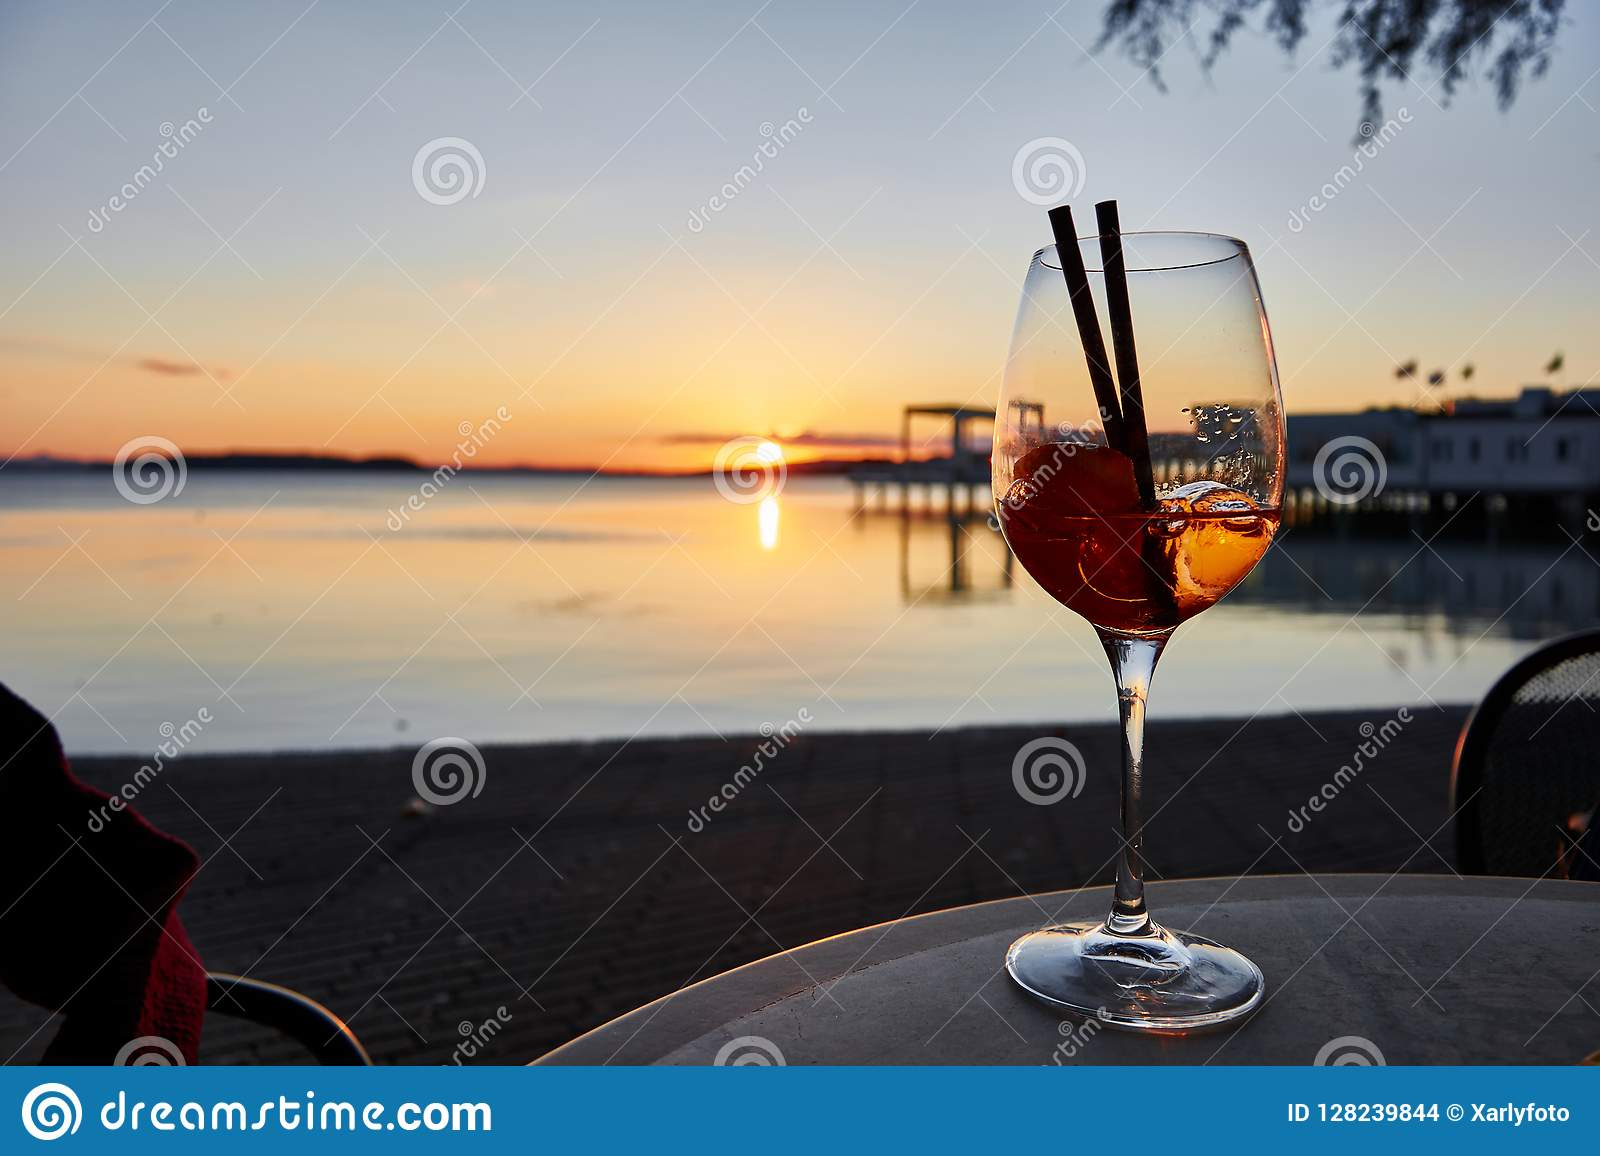 Drinking in the sunset